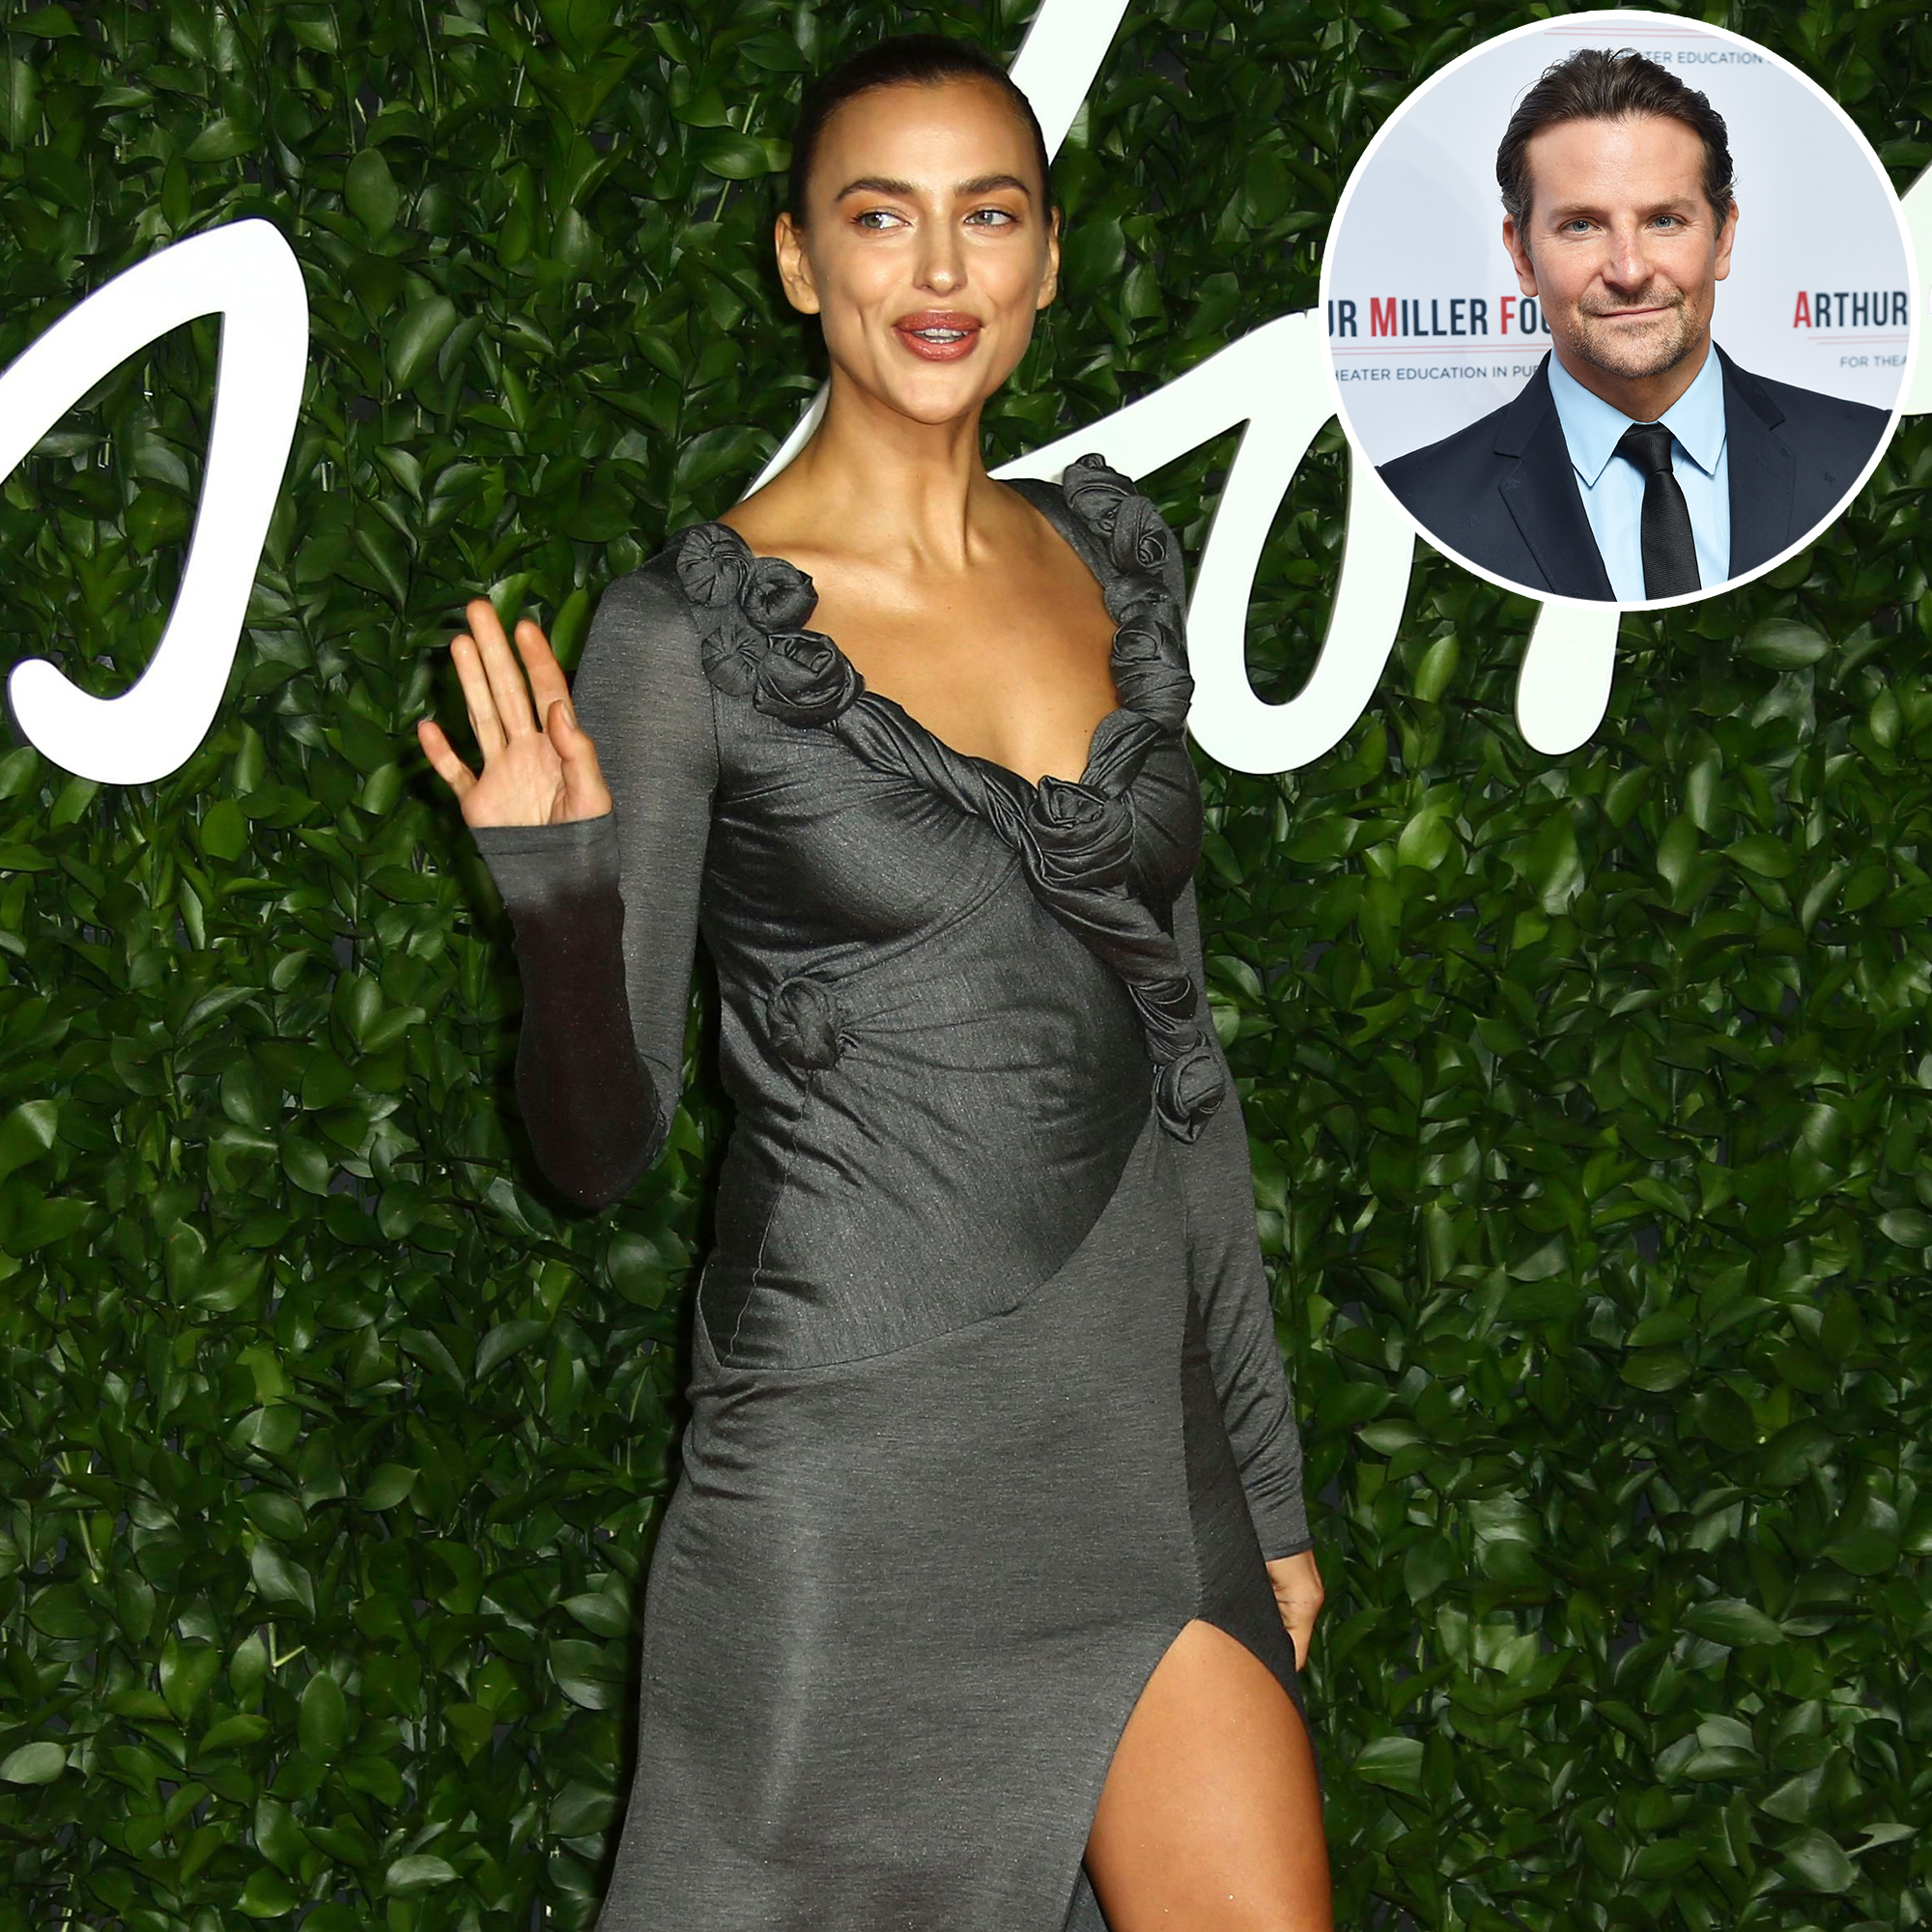 Irina Shayk Reflects on Life After Bradley Cooper Split in Rare Interview